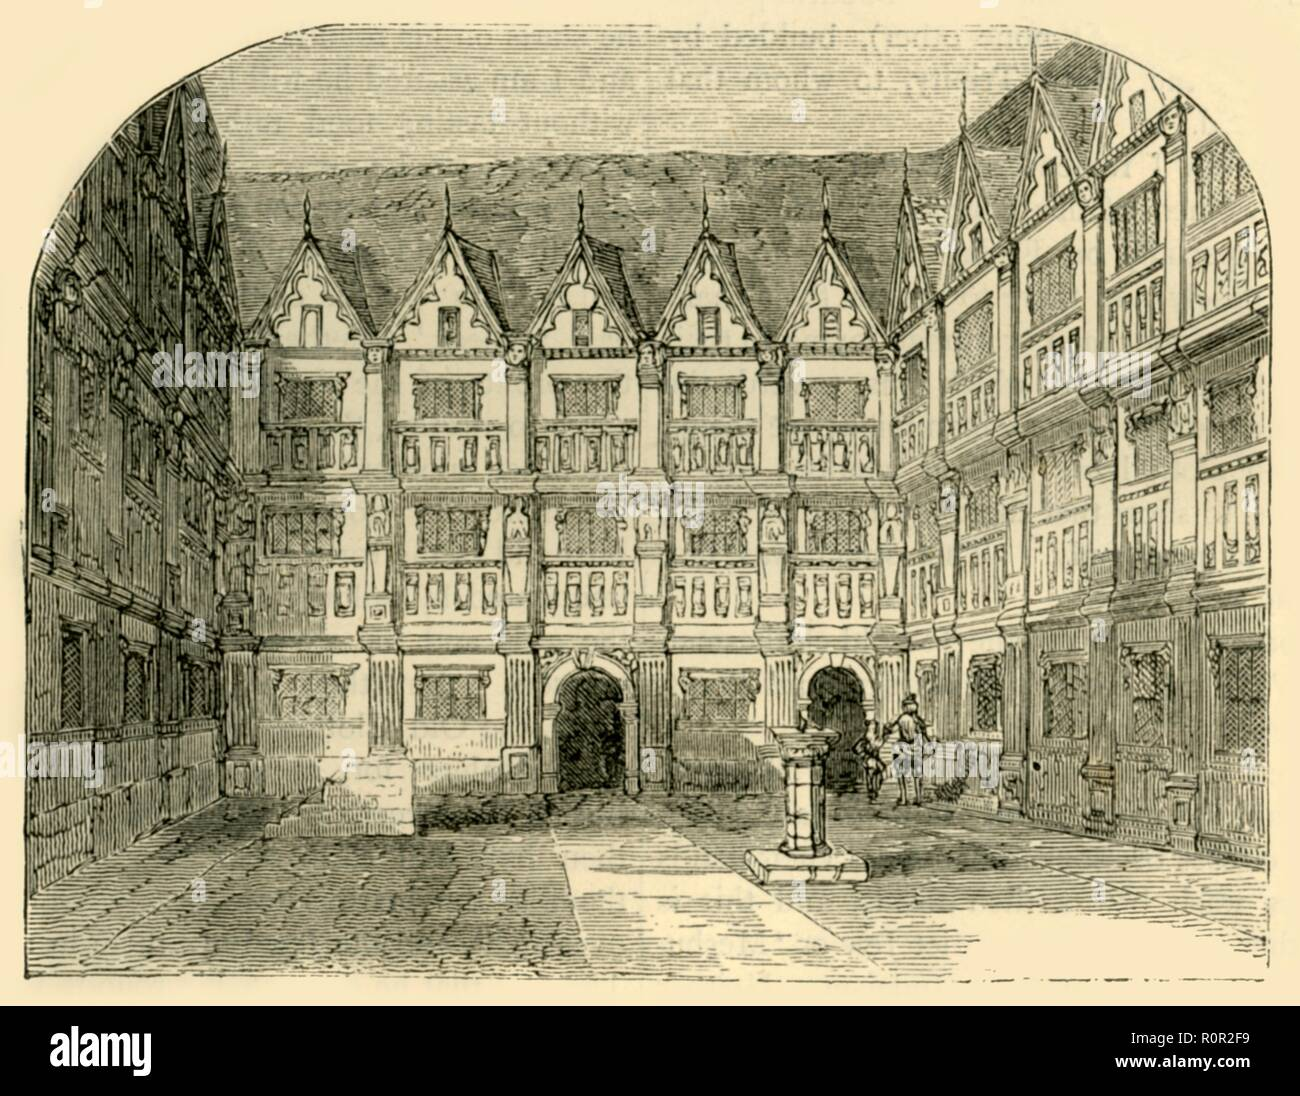 'Sir Thomas Gresham's House in Bishopsgate Street', (c1872). The 16th-century house of English merchant and financier Sir Thomas Gresham (c1519-1579). His will dictated that the house be used as a college, and Gresham College was established in the house in 1597. From Old and New London, Vol. II: A Narrative of Its History, Its People, and Its Places, by Walter Thornbury. [Cassell, Petter, Galpin & Co., London, Paris & New York] - Stock Image